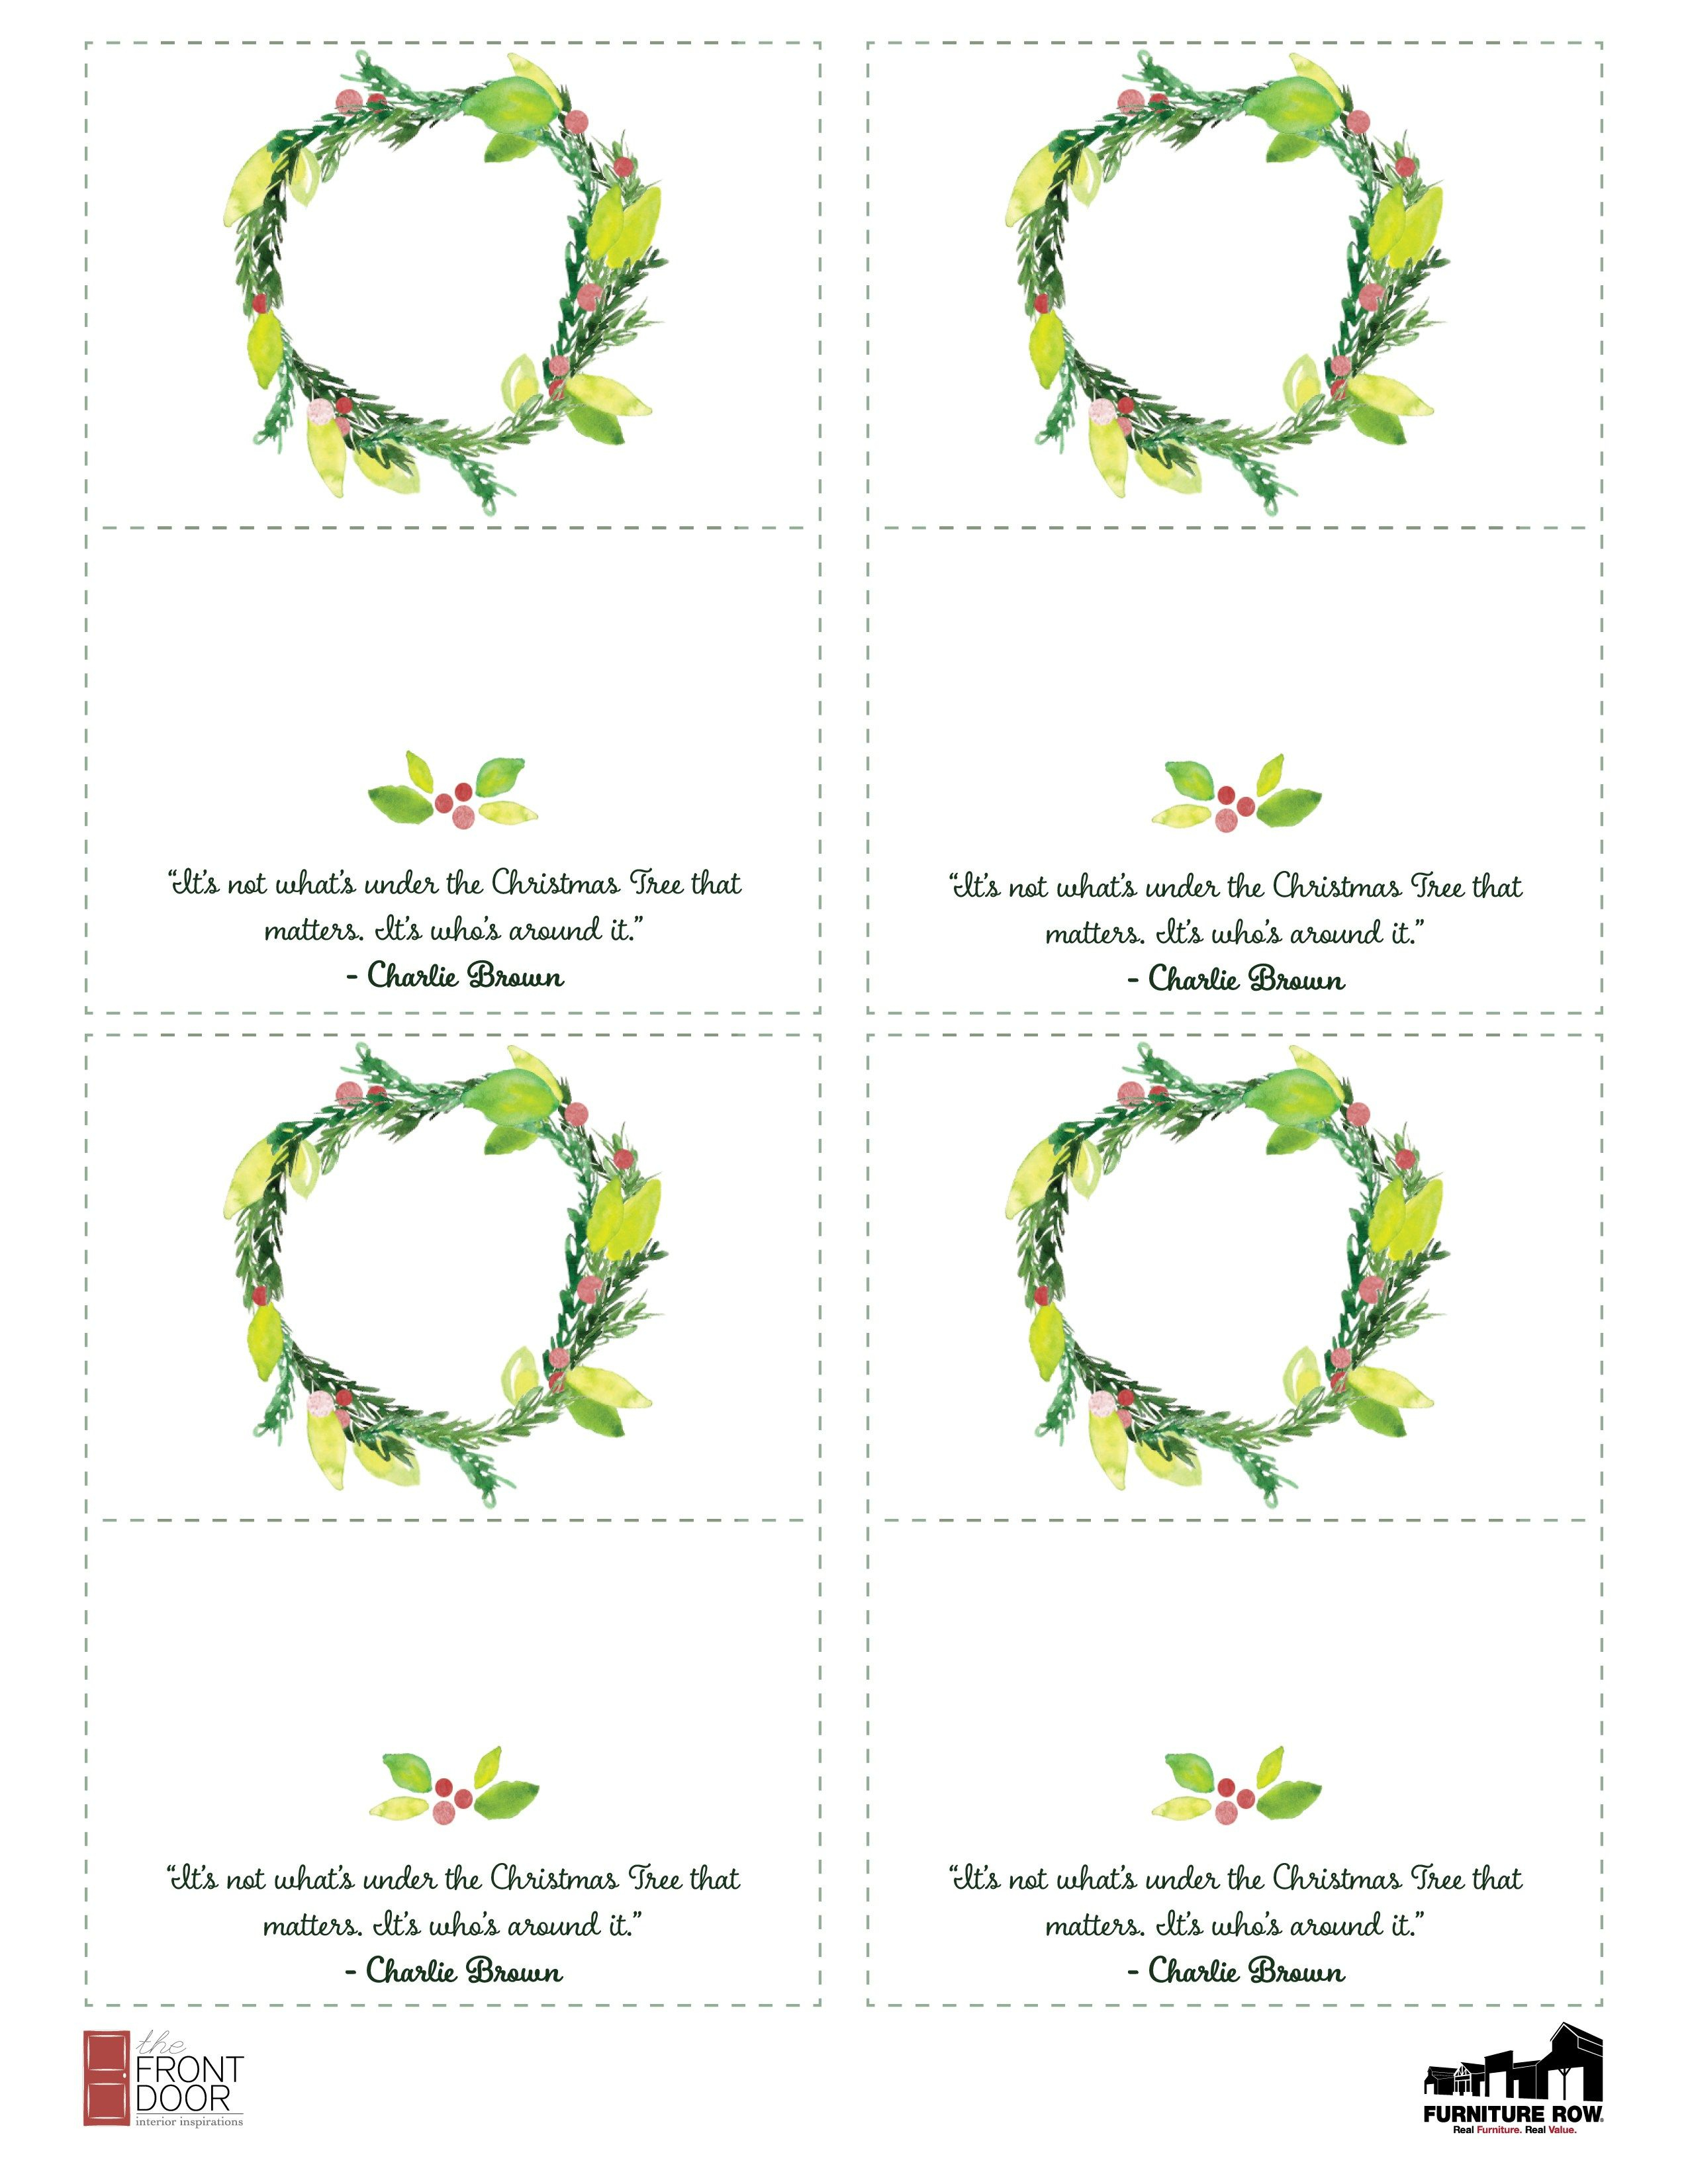 Printable Christmas Place Name Cards For The Table | Holiday - Christmas Table Name Cards Free Printable